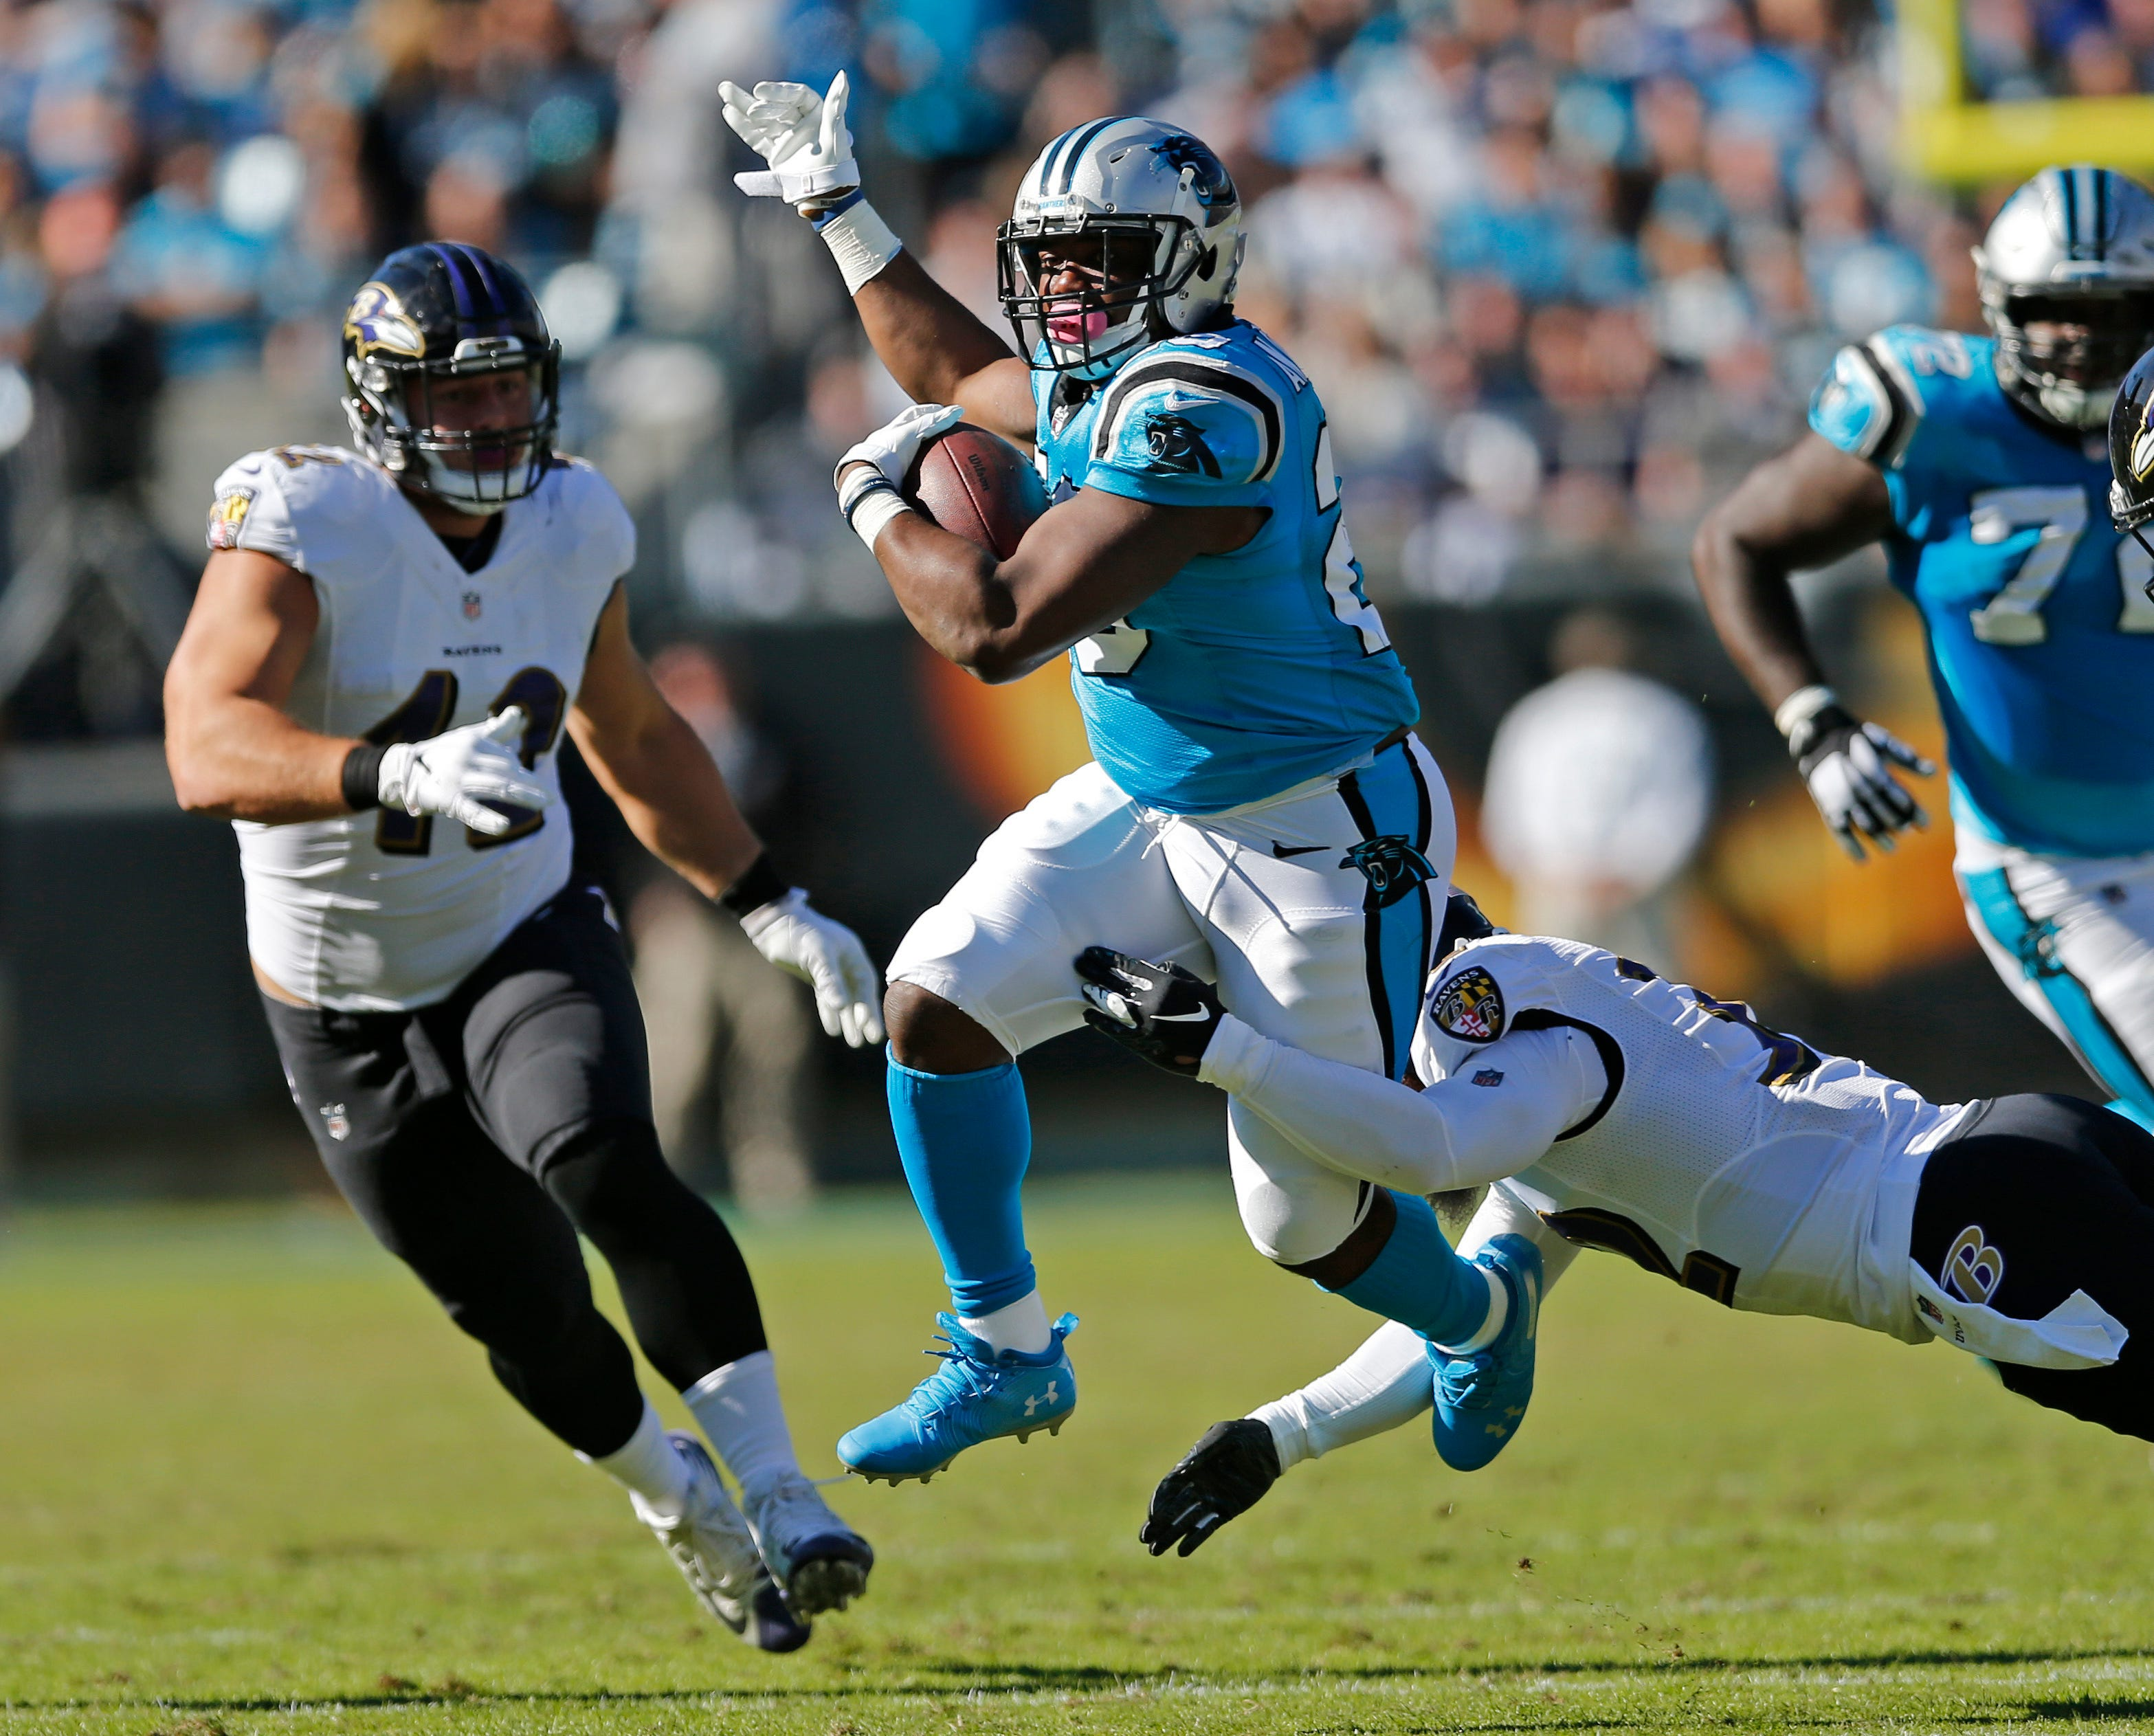 Rivera: Anderson's frustration over role led to release